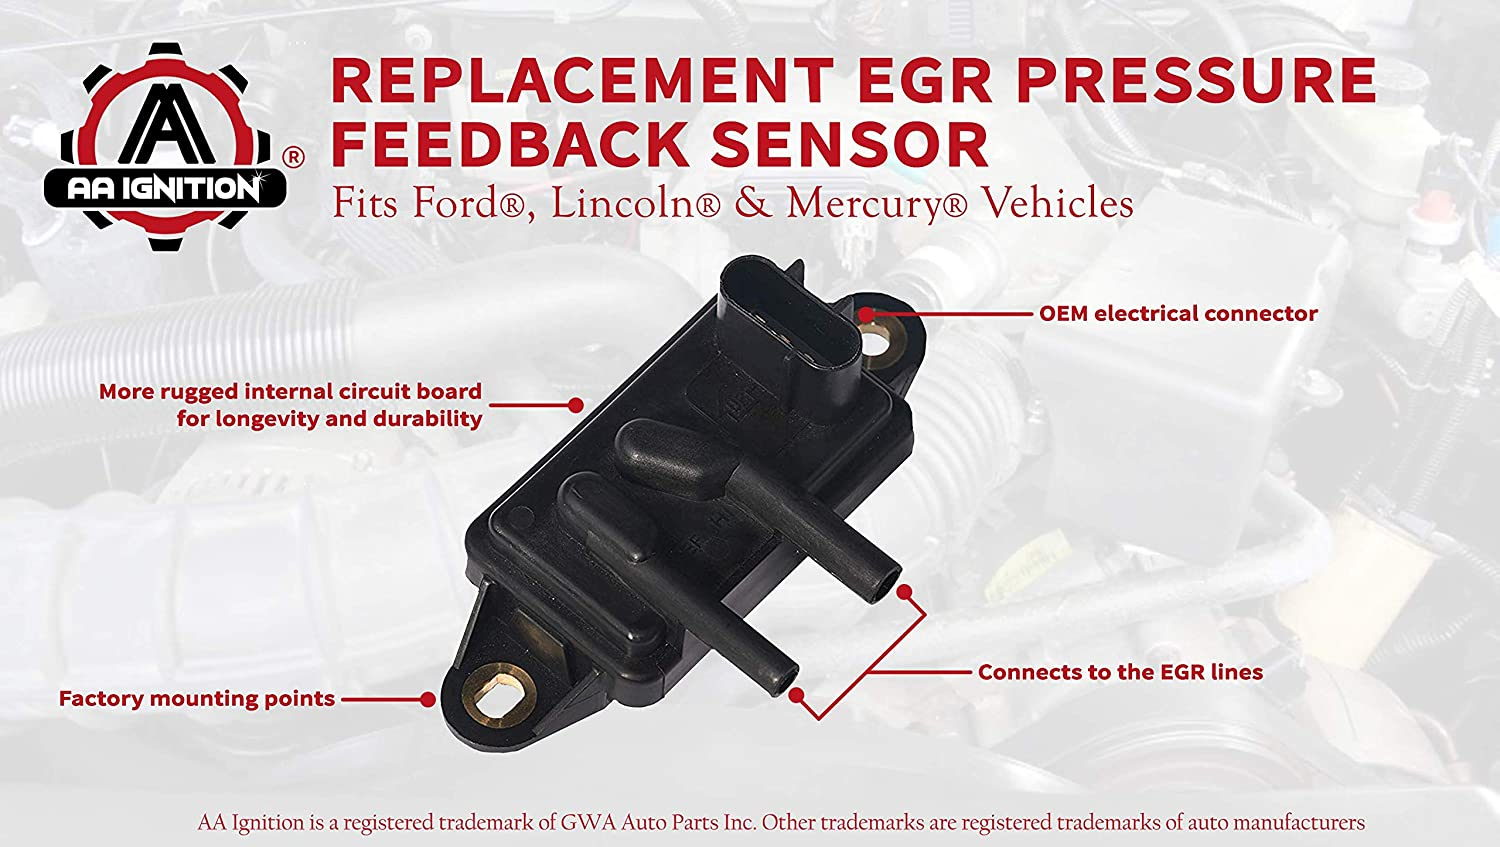 EGR Exhaust Gas Recirculation Pressure Feedback Sensor For Ford Lincoln Mazda Mercury Replaces DPFE15 EPS4